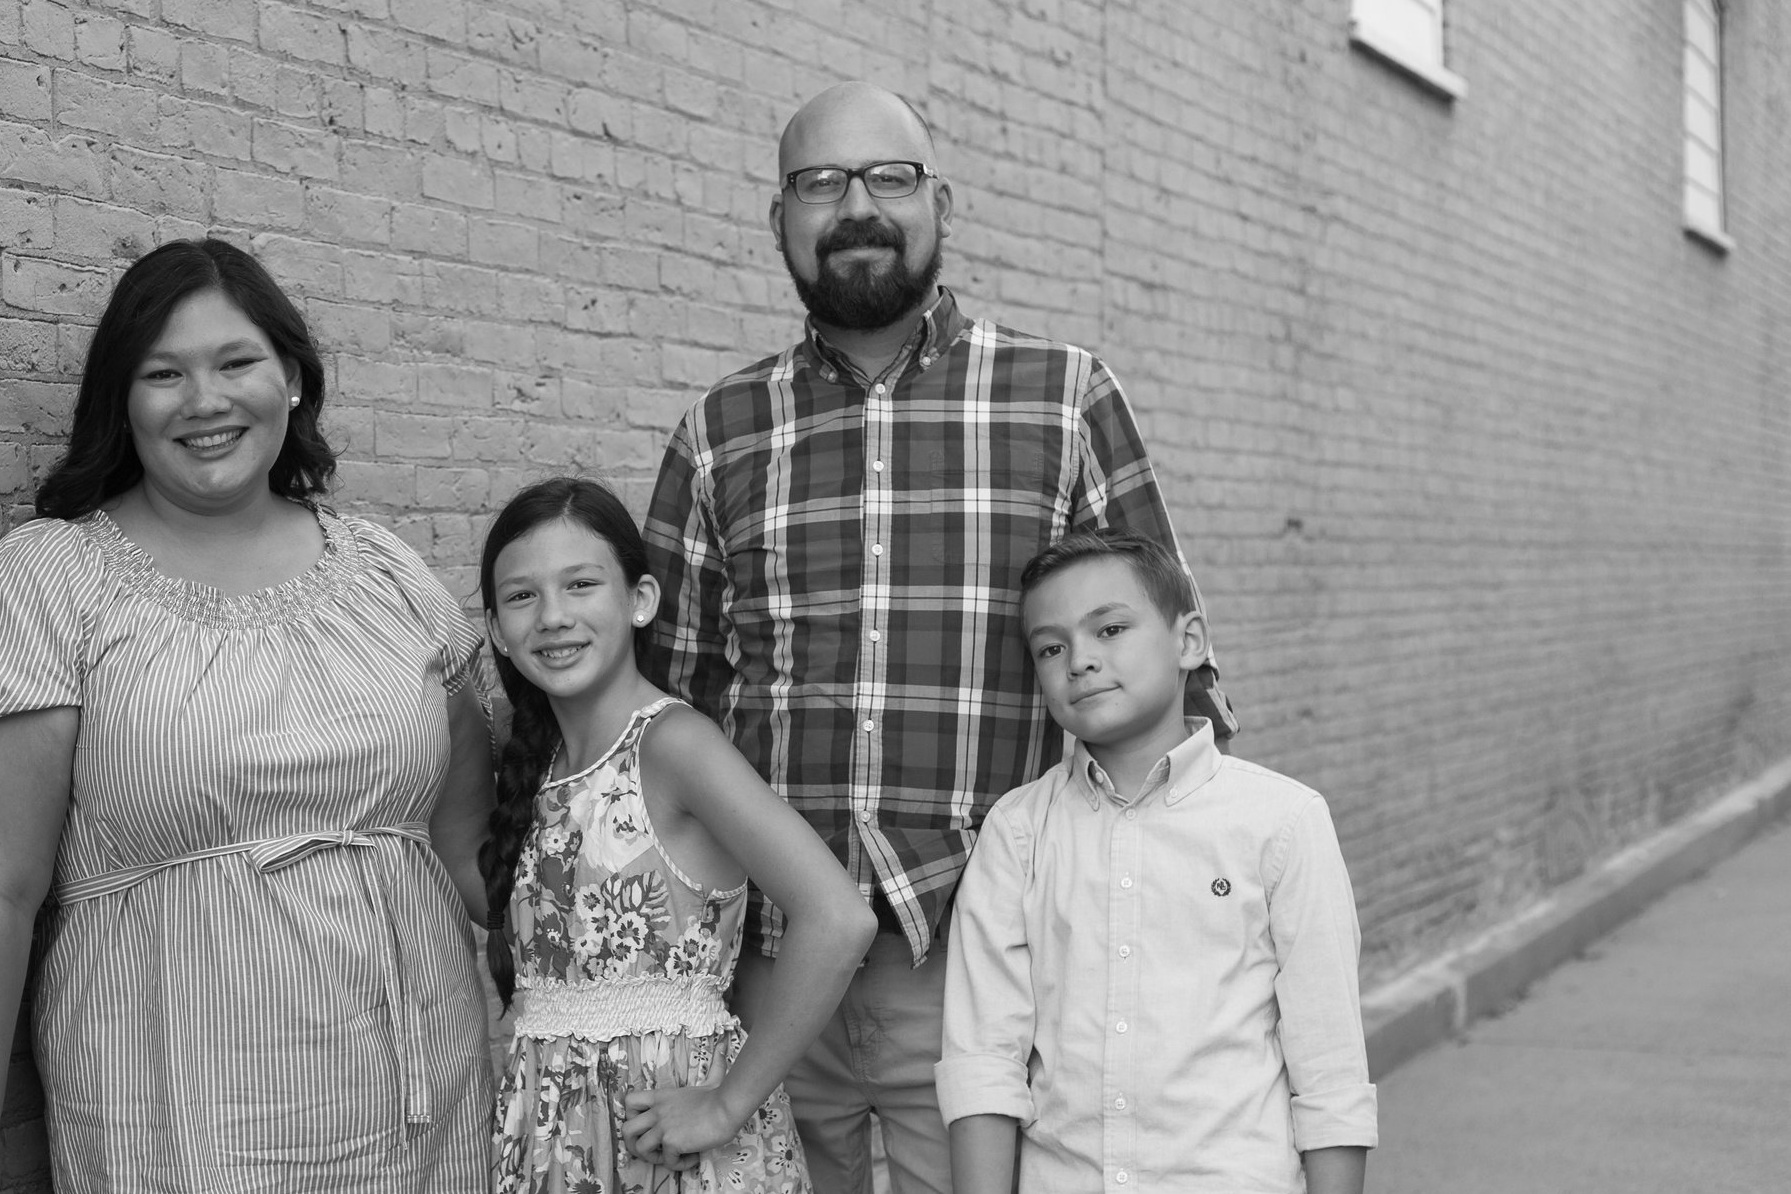 Our Wonder Collective… - Our family is on a quest to discover wonder through exploring, learning, and the everyday.We exist to inspire others to look for wonder in their every day and to encourage parents raising wonders of their own.